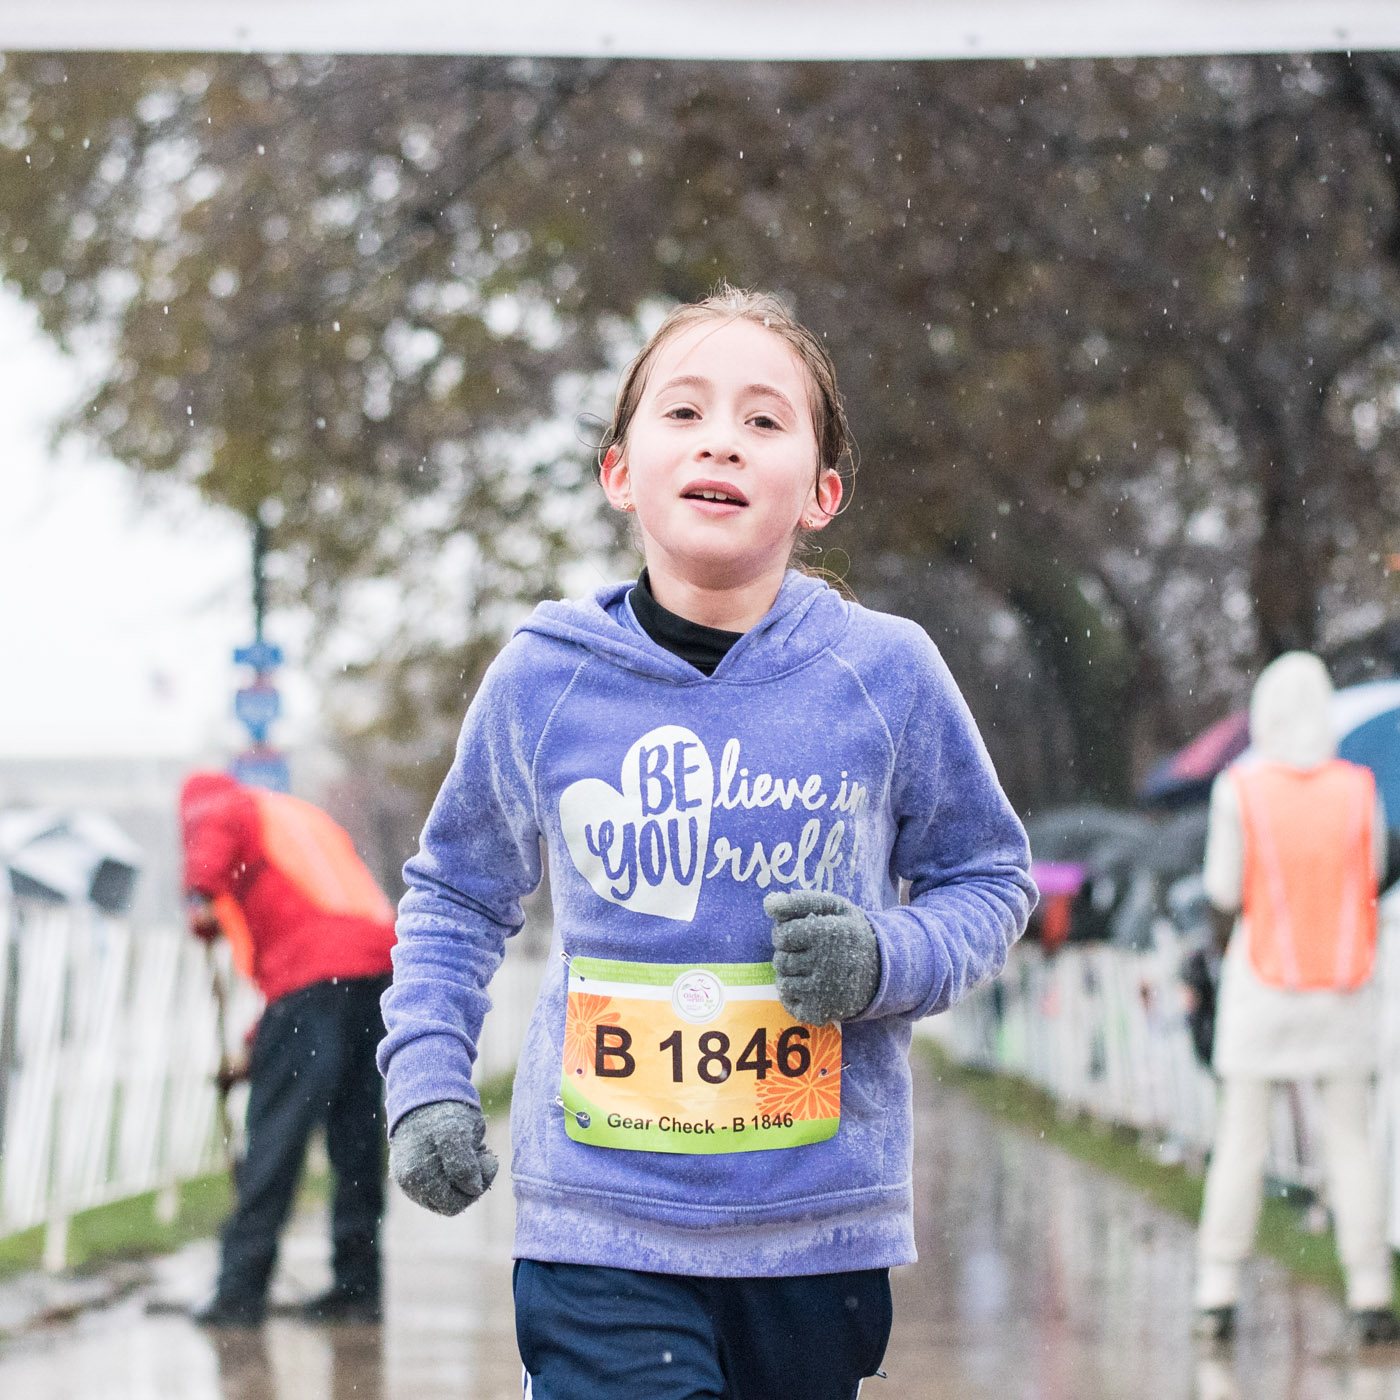 Determination personified at Girls on the Run 5k